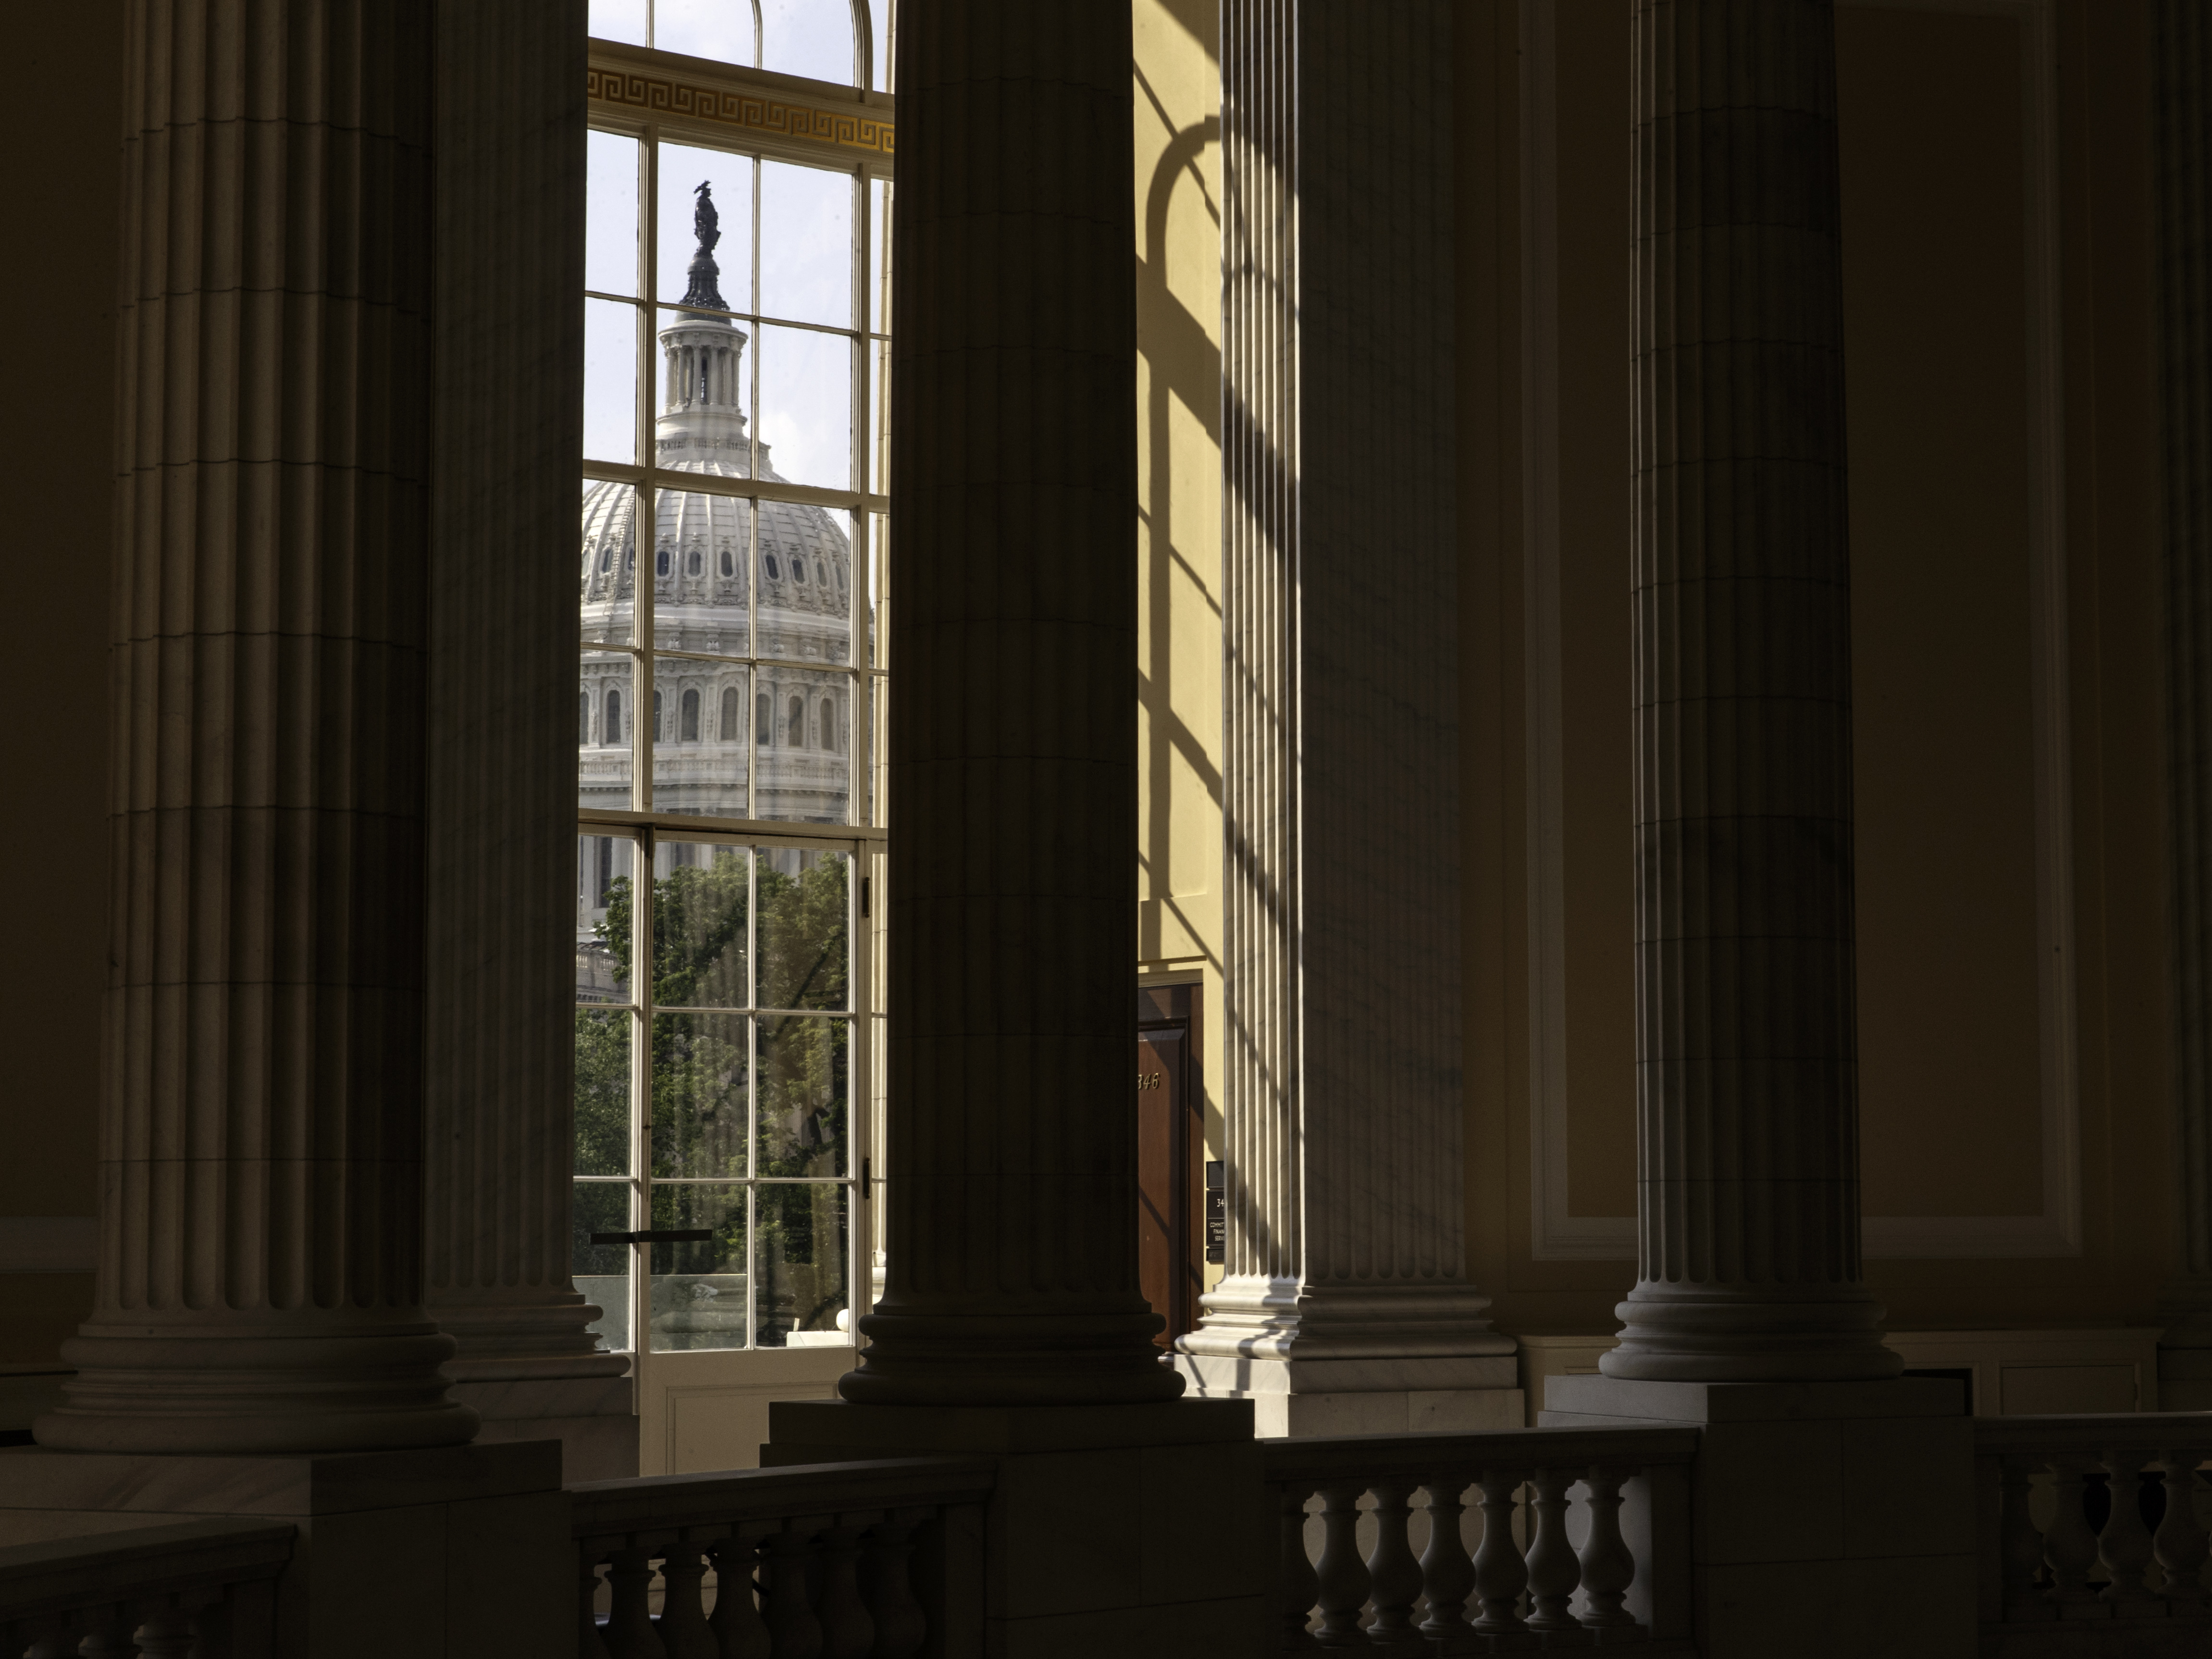 The U.S. Capitol building as seen from the Cannon House Office Building in Washington.